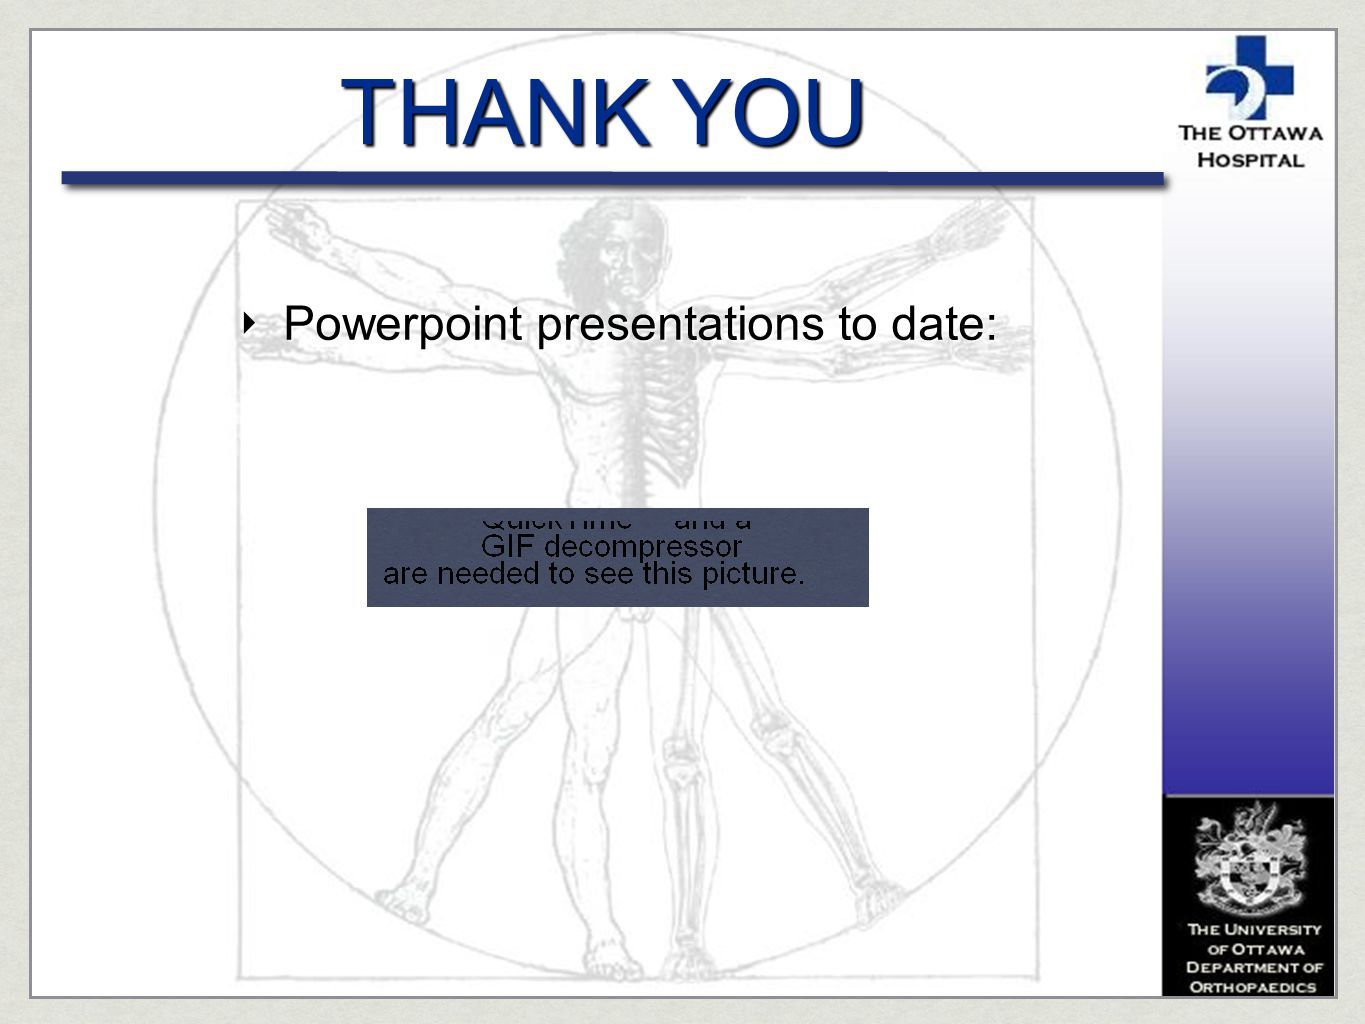 Powerpoint presentations to date: